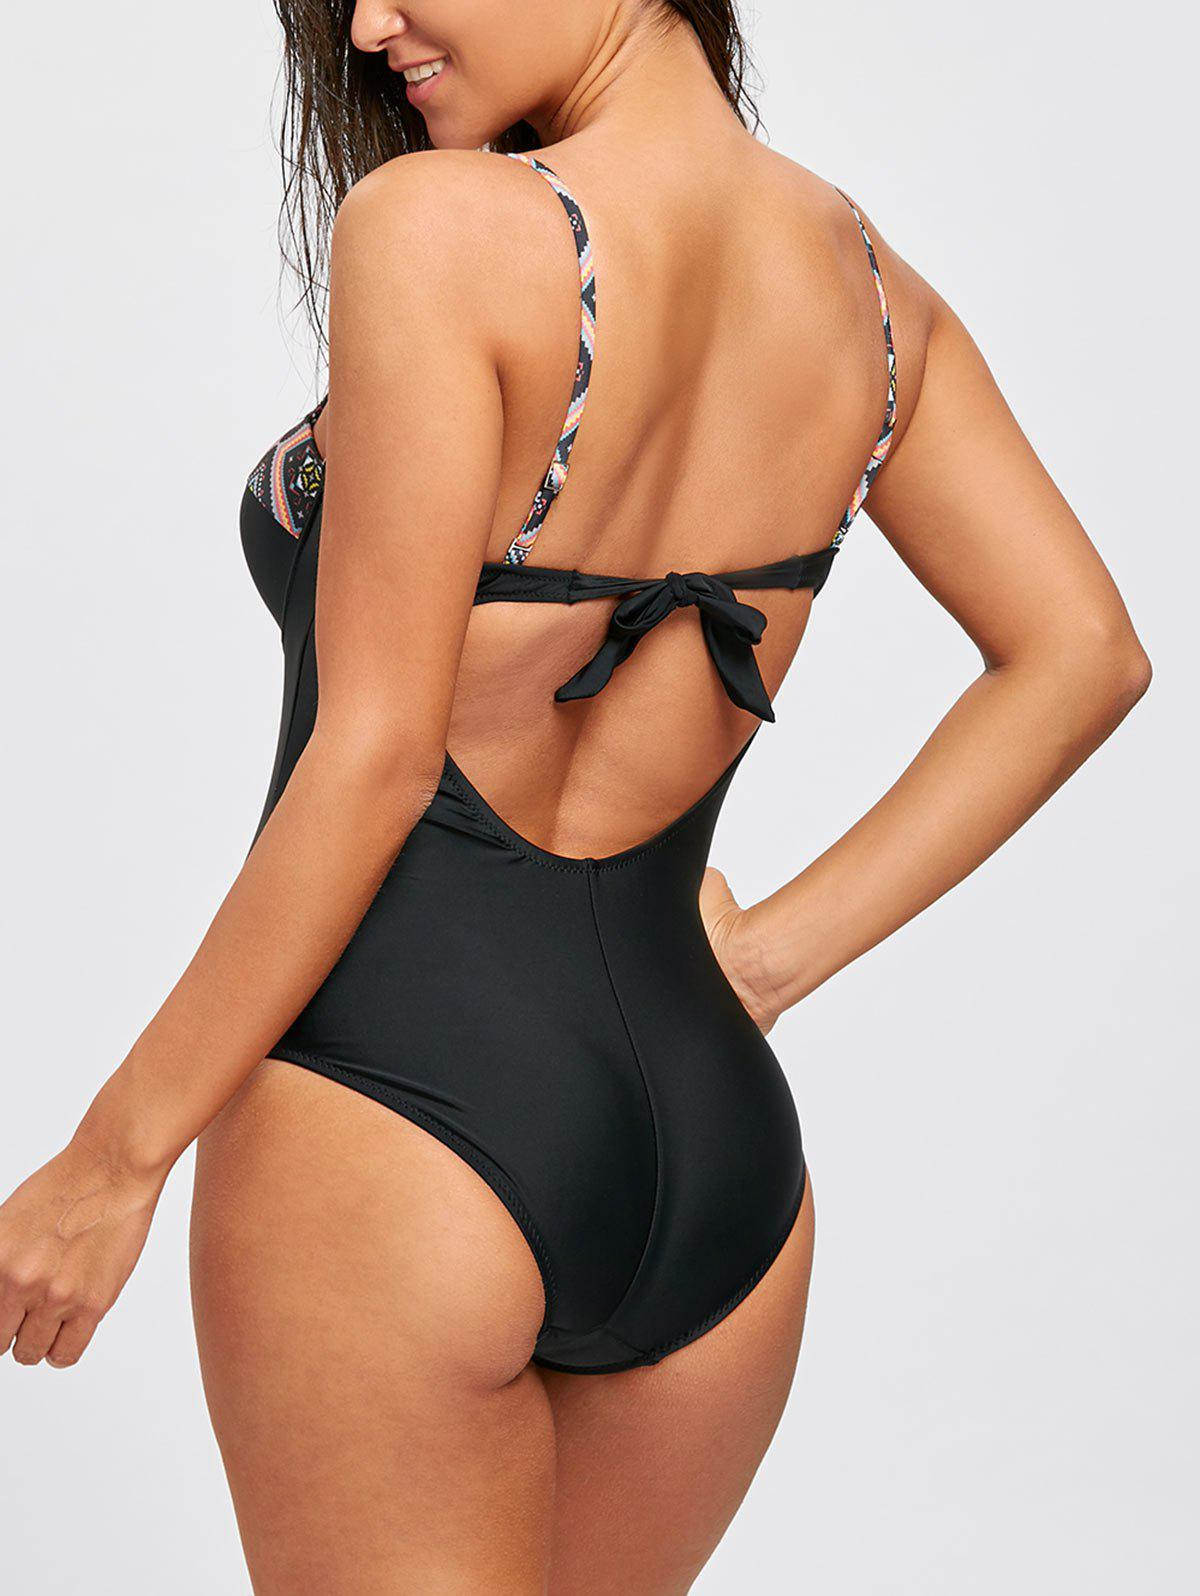 Backless Spaghetti Strap Underwire Swimsuit - BLACK S